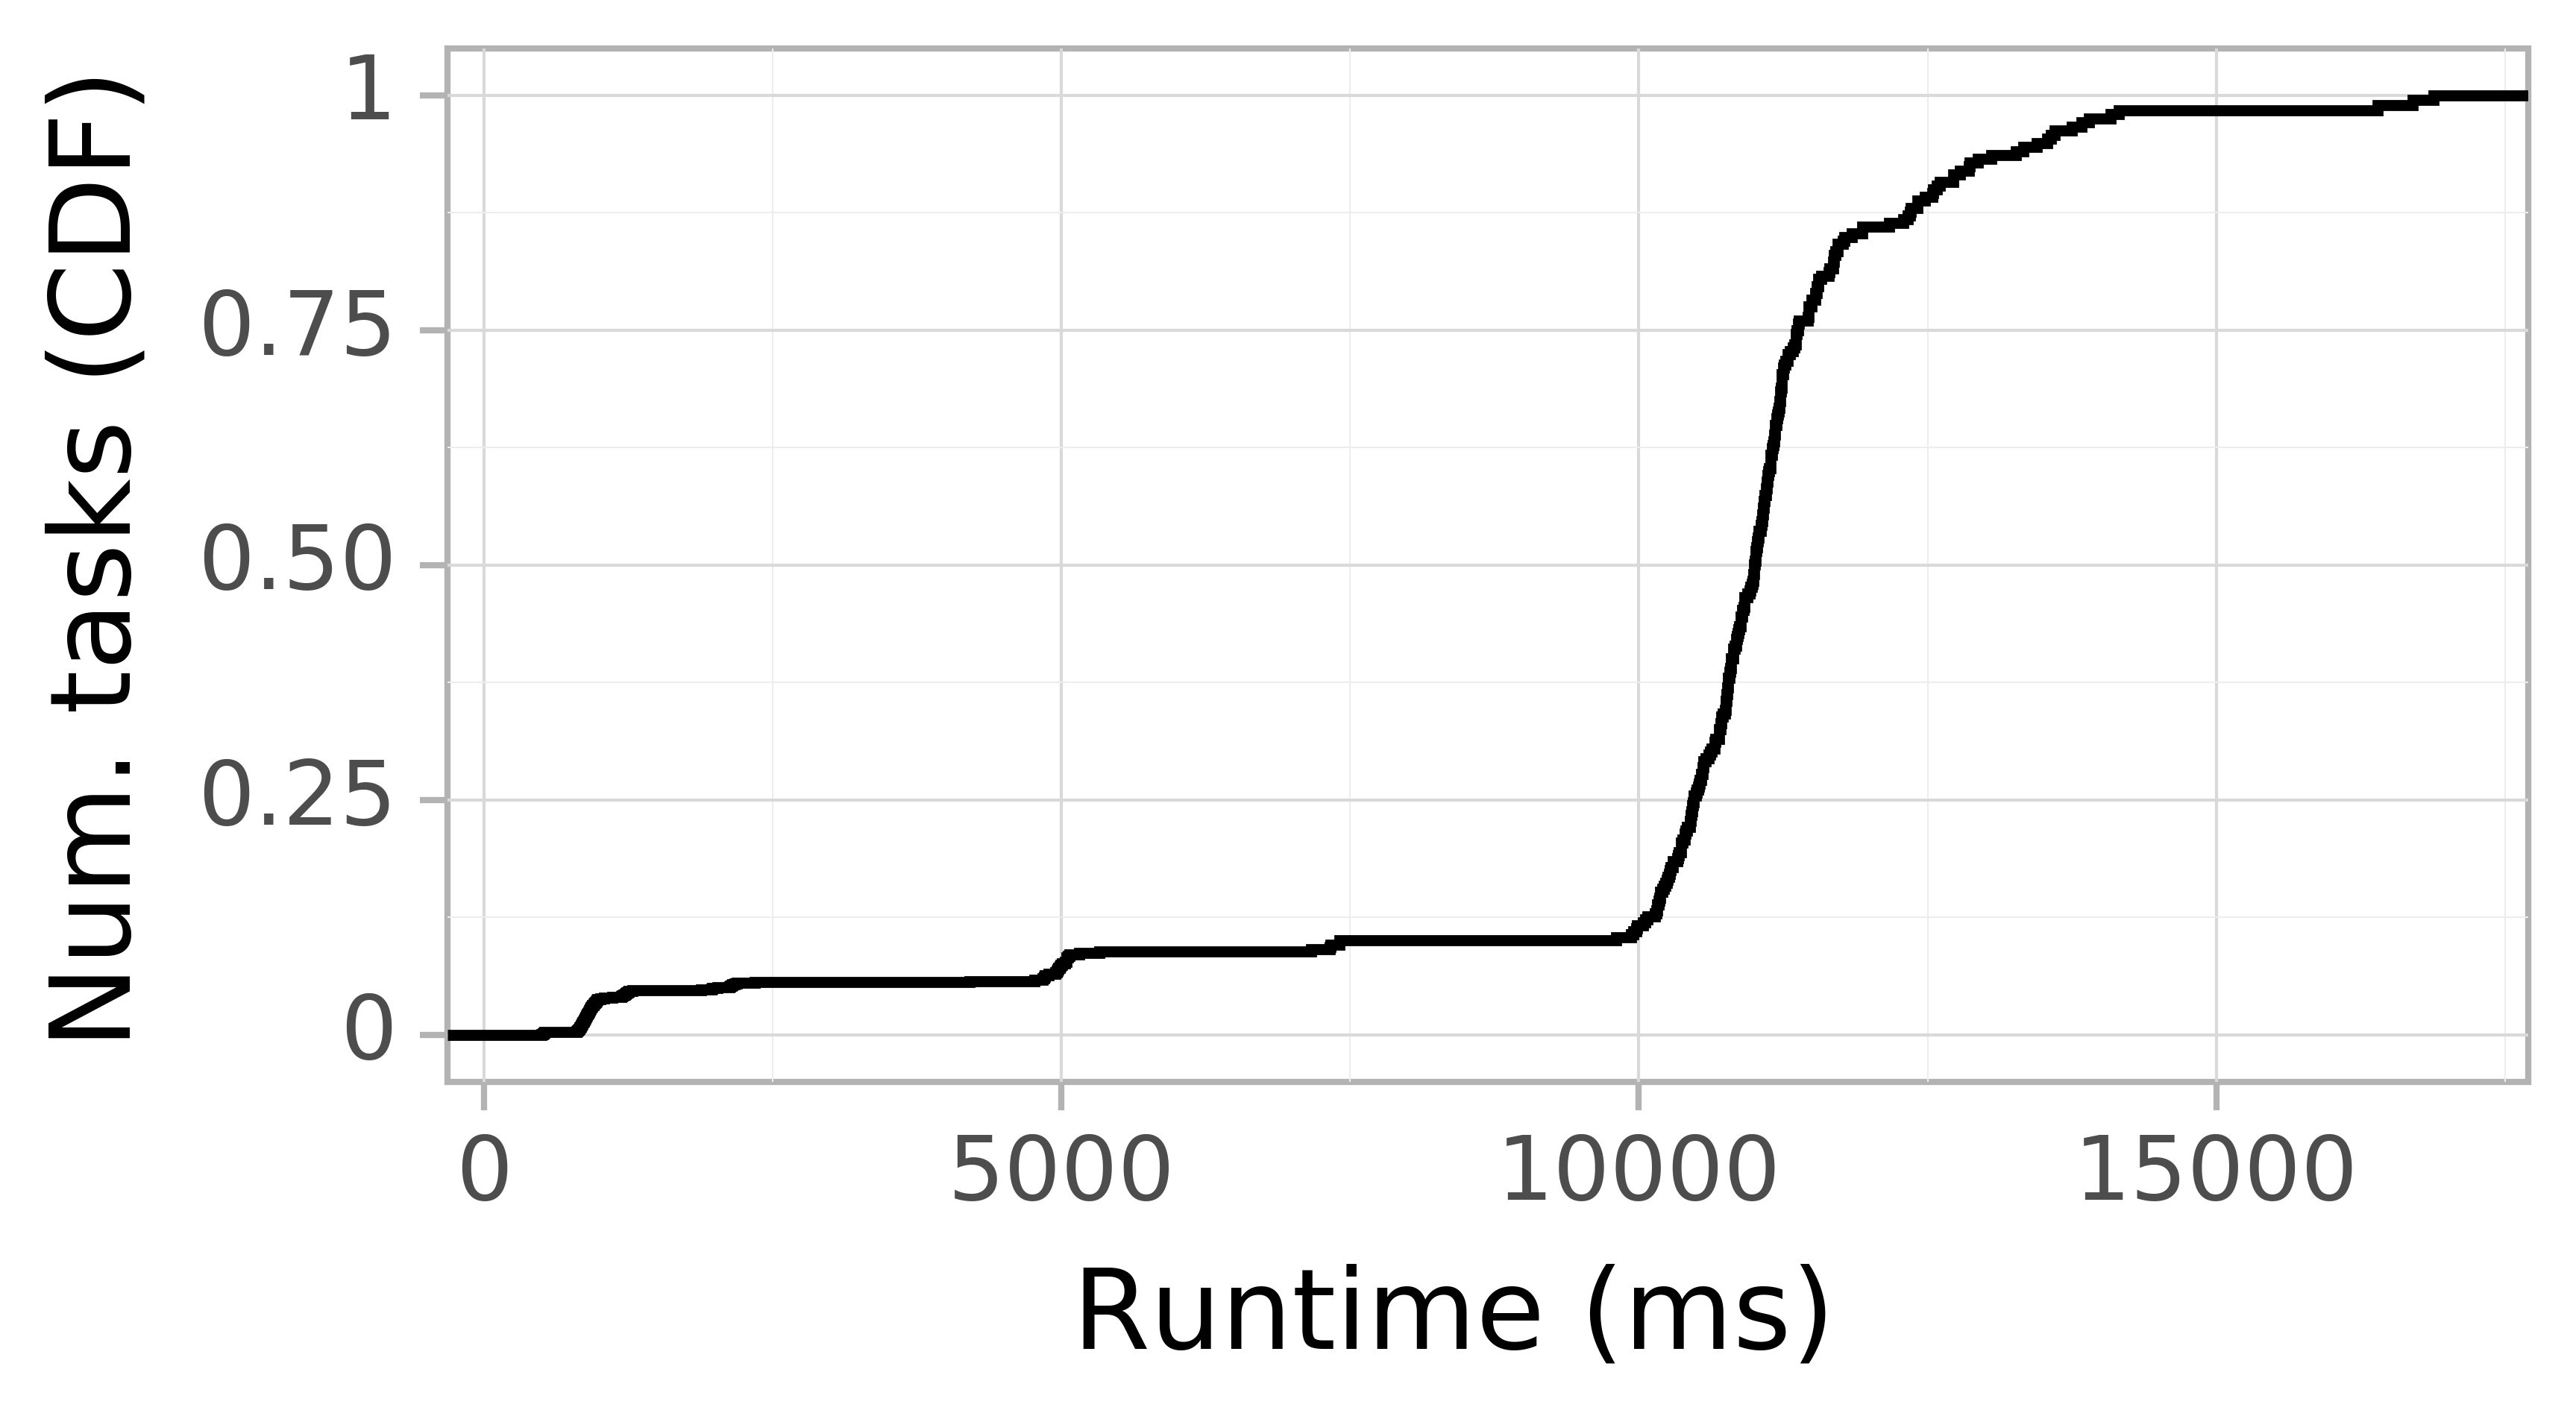 Task runtime CDF graph for the askalon-new_ee40 trace.